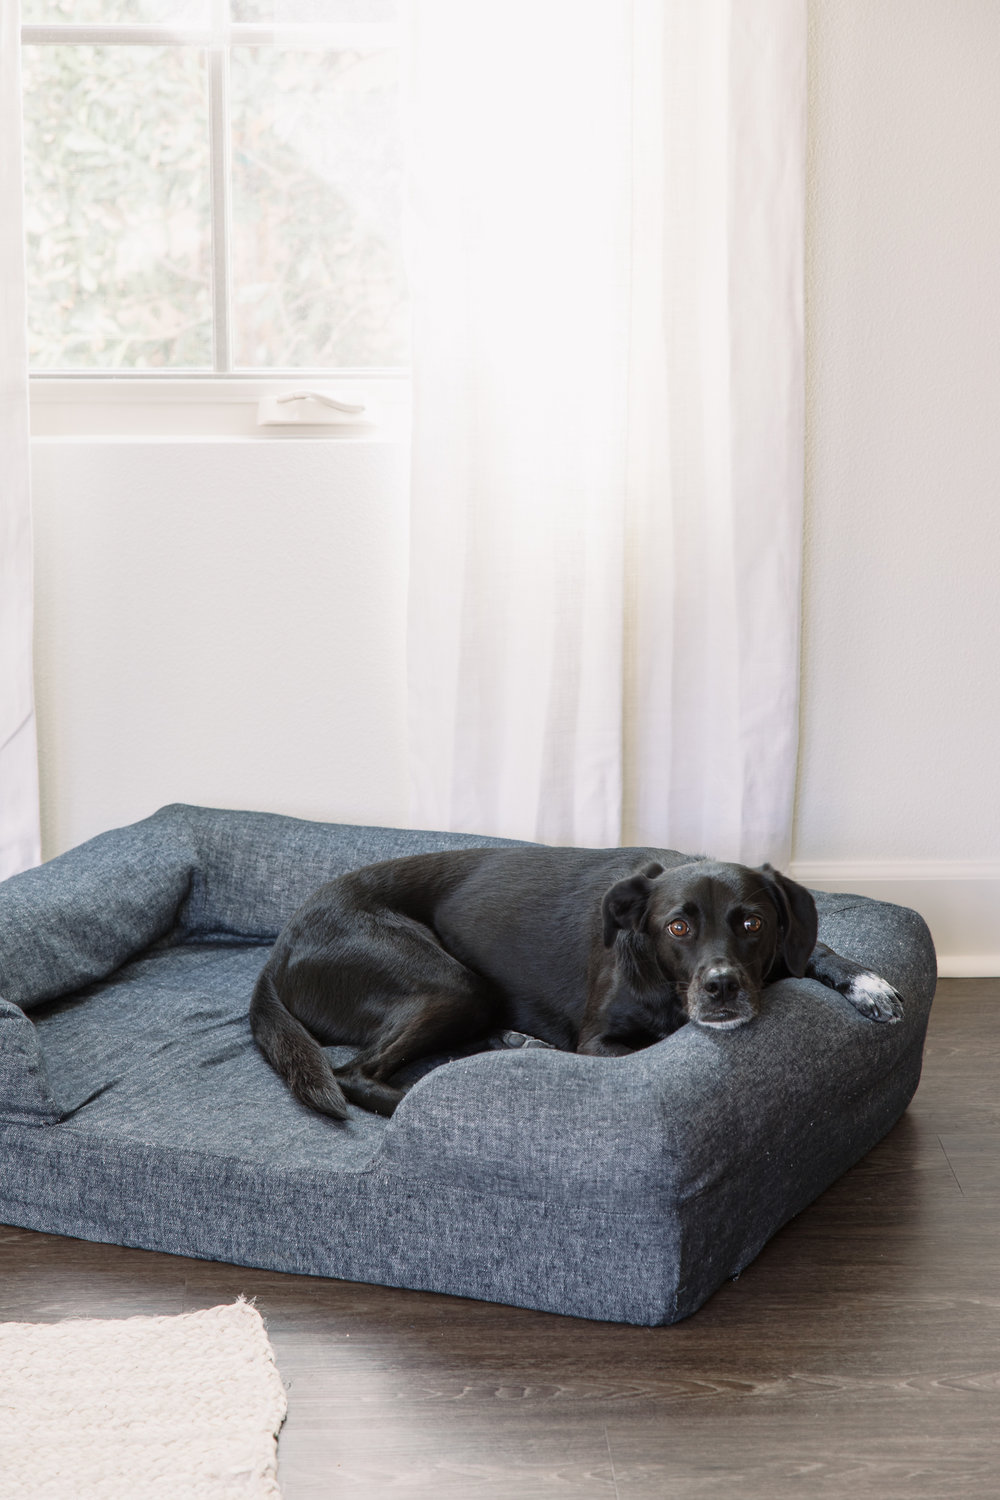 Even the dog bed matches!